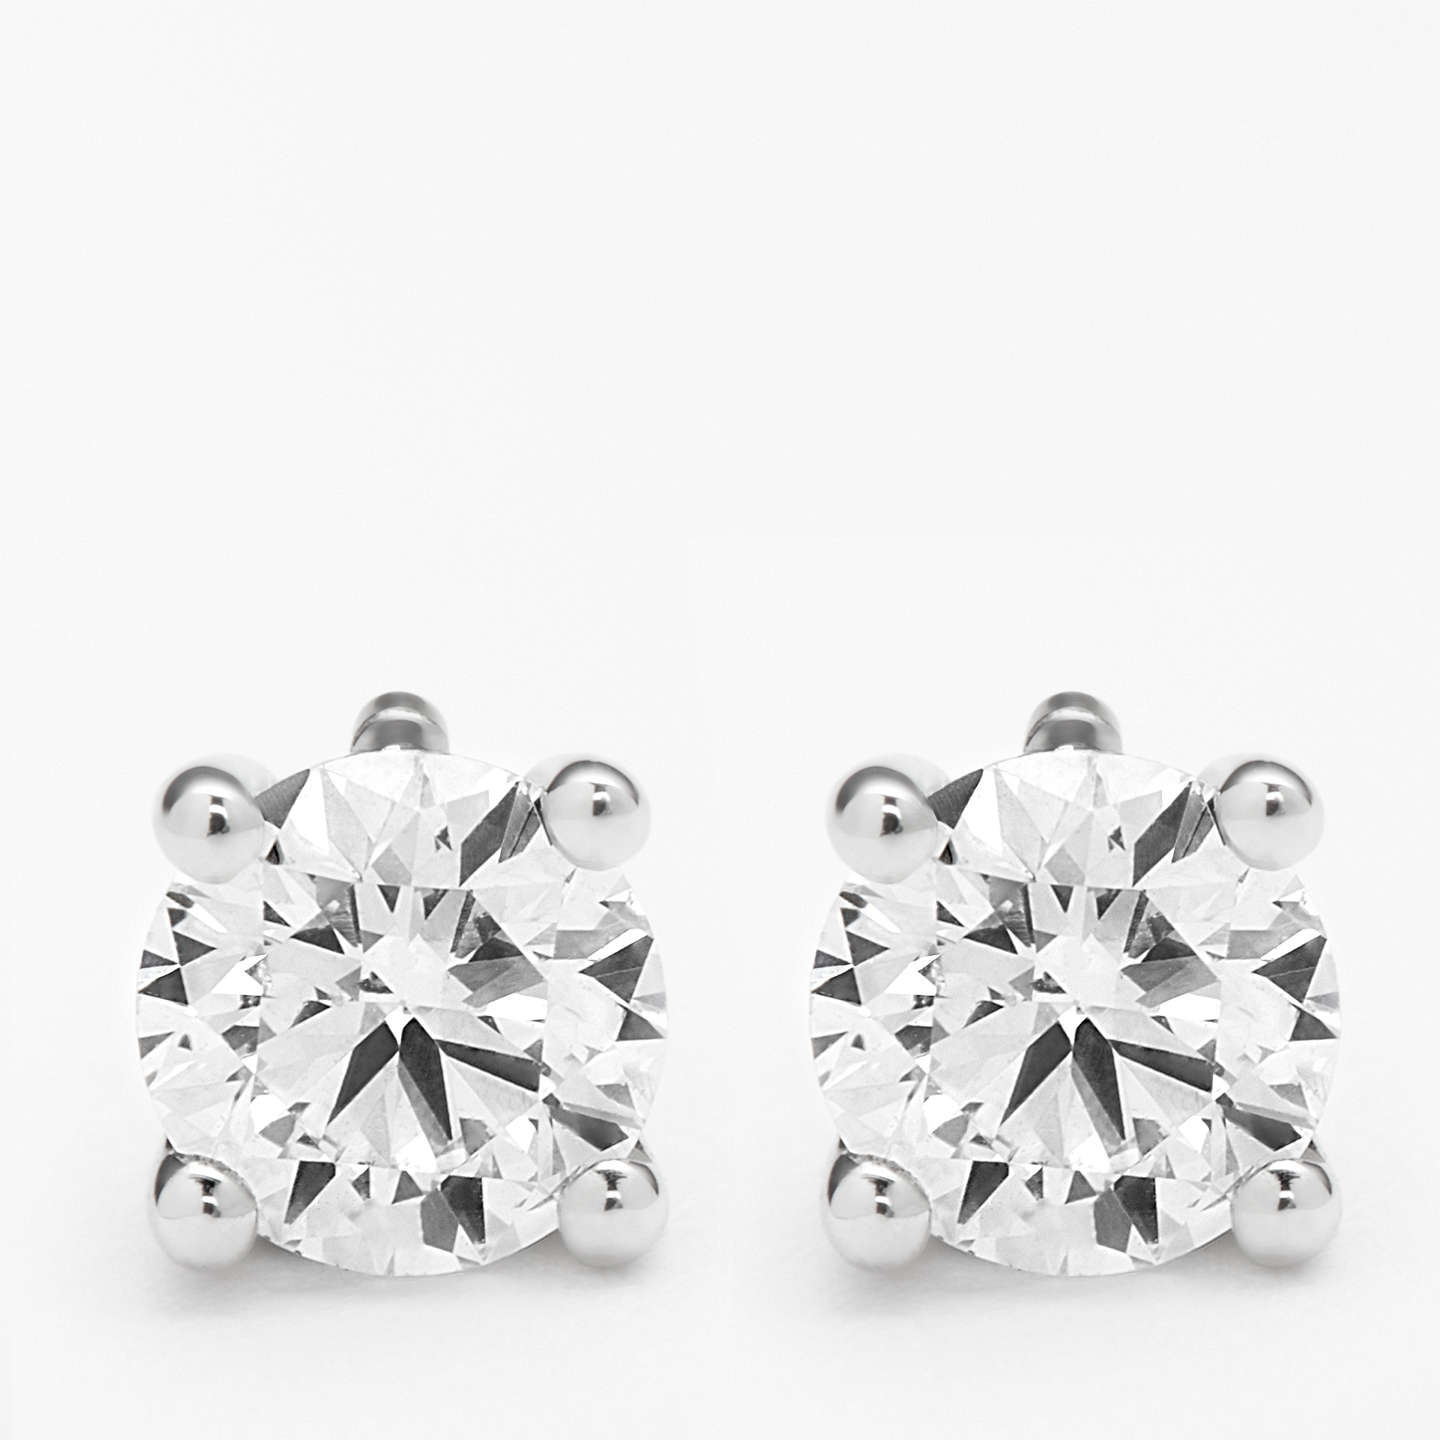 BuyDiamond Collection 18ct White Gold Round Brilliant Solitaire Diamond Stud Earrings, 0.5ct Online at johnlewis.com